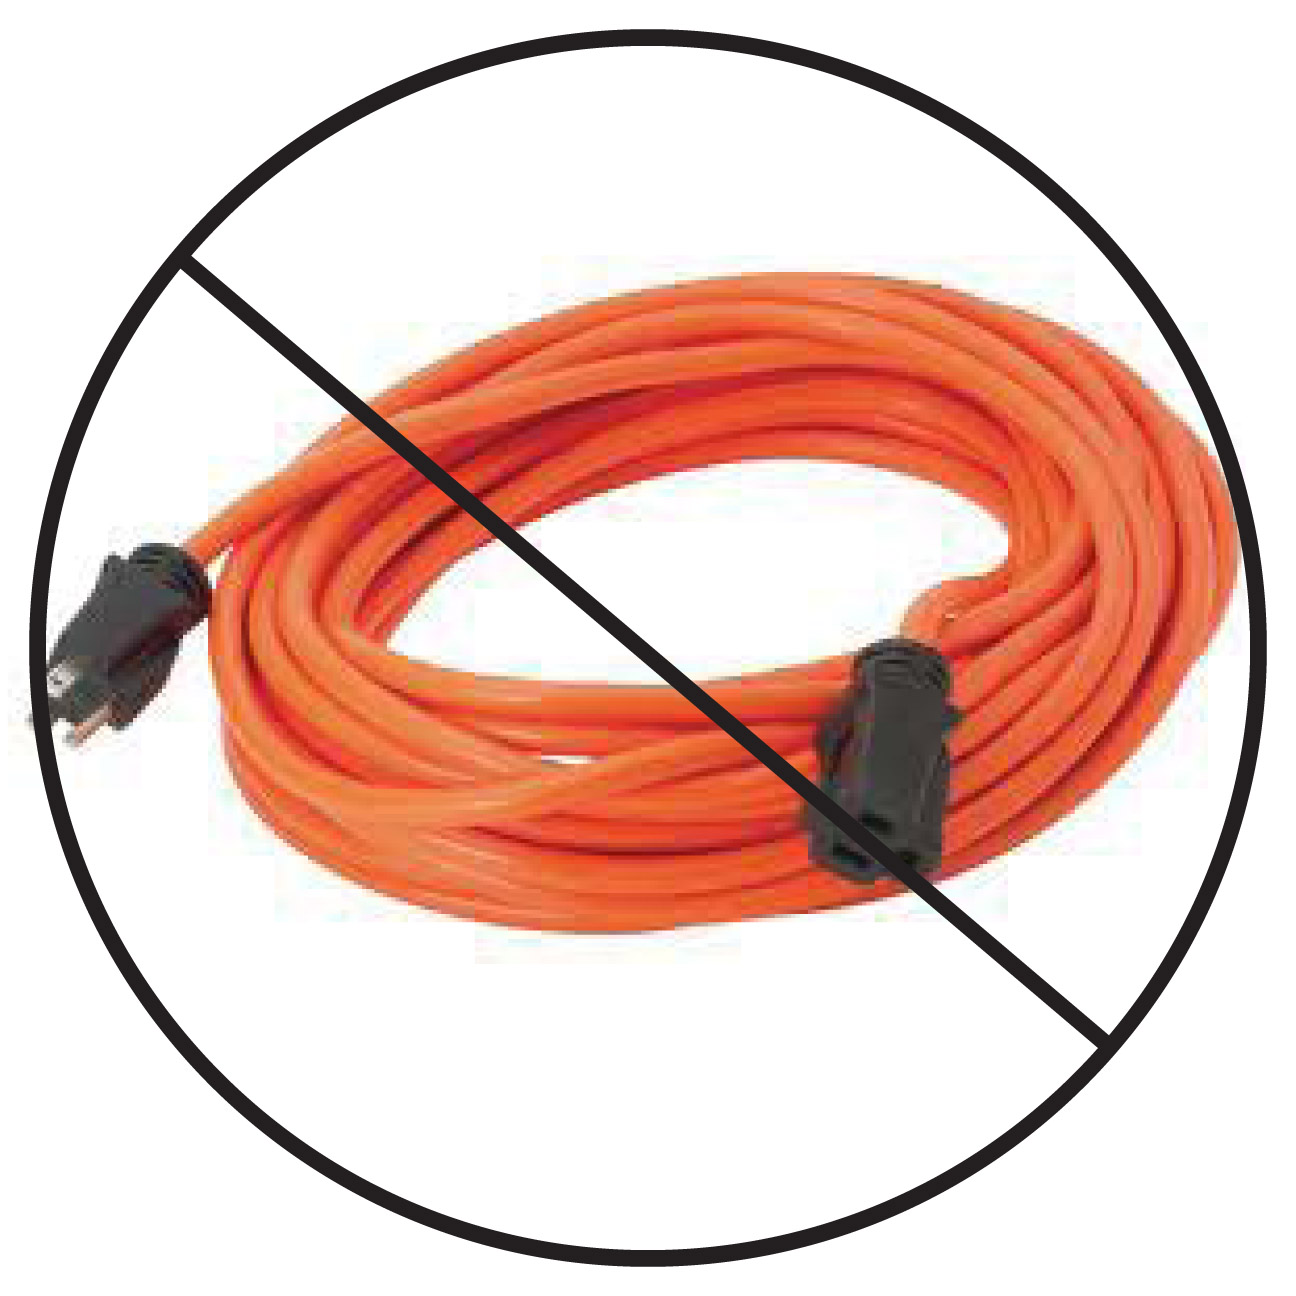 No Extension Cords : Electrical cord clipart imgkid the image kid